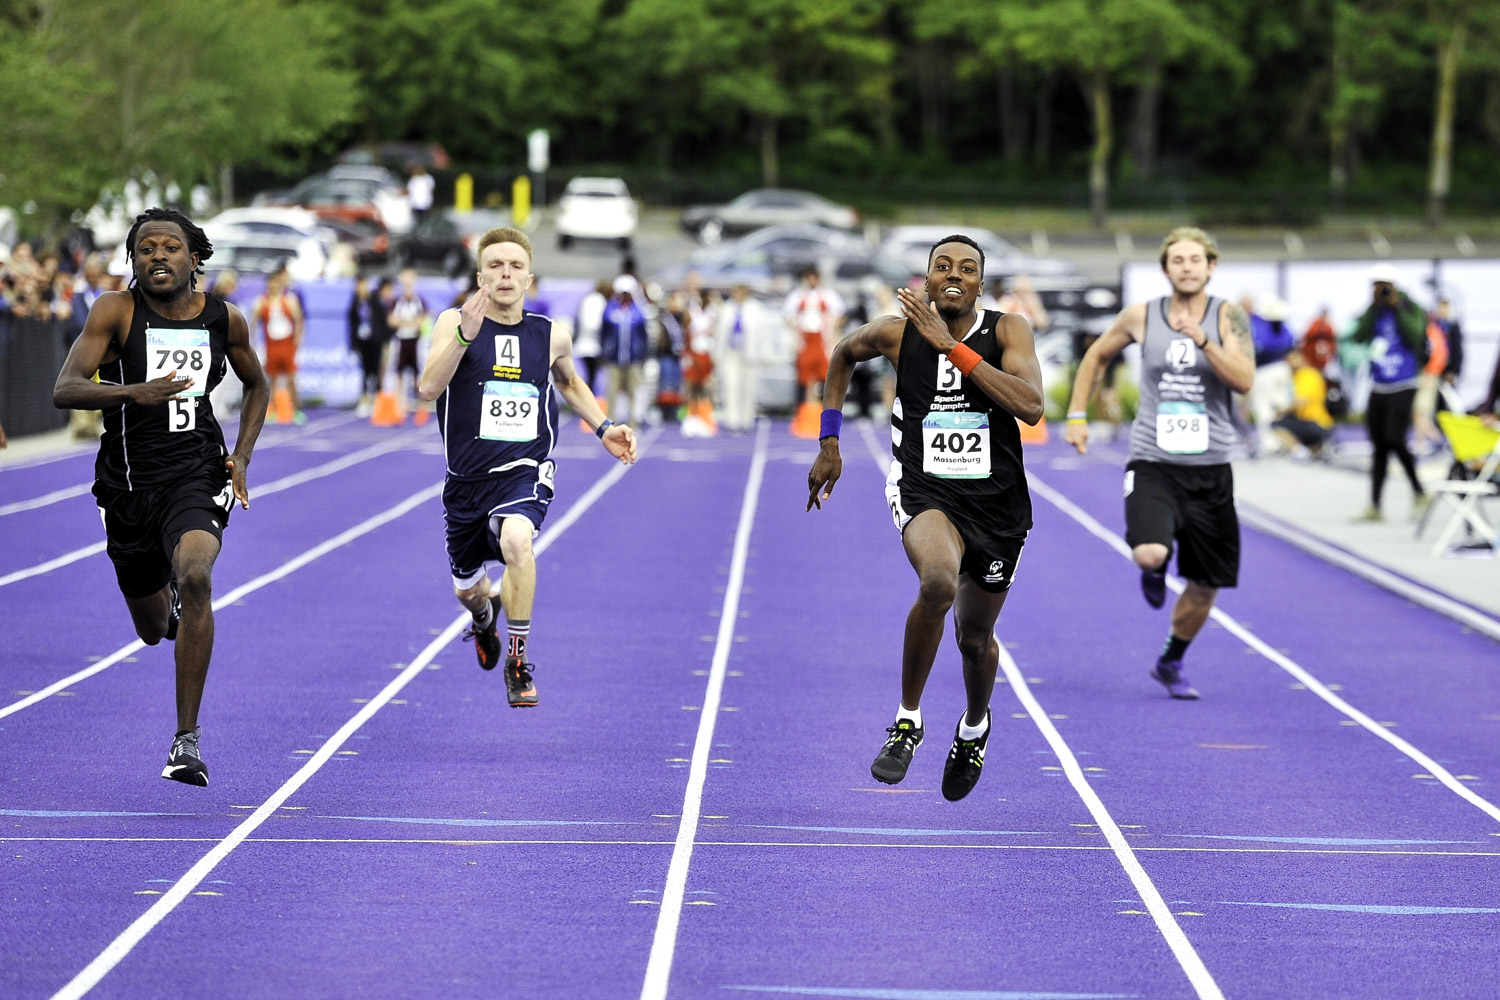 Athletes approaching the finish line at the 100 meter dash on the Husky Track of the University of Washington.